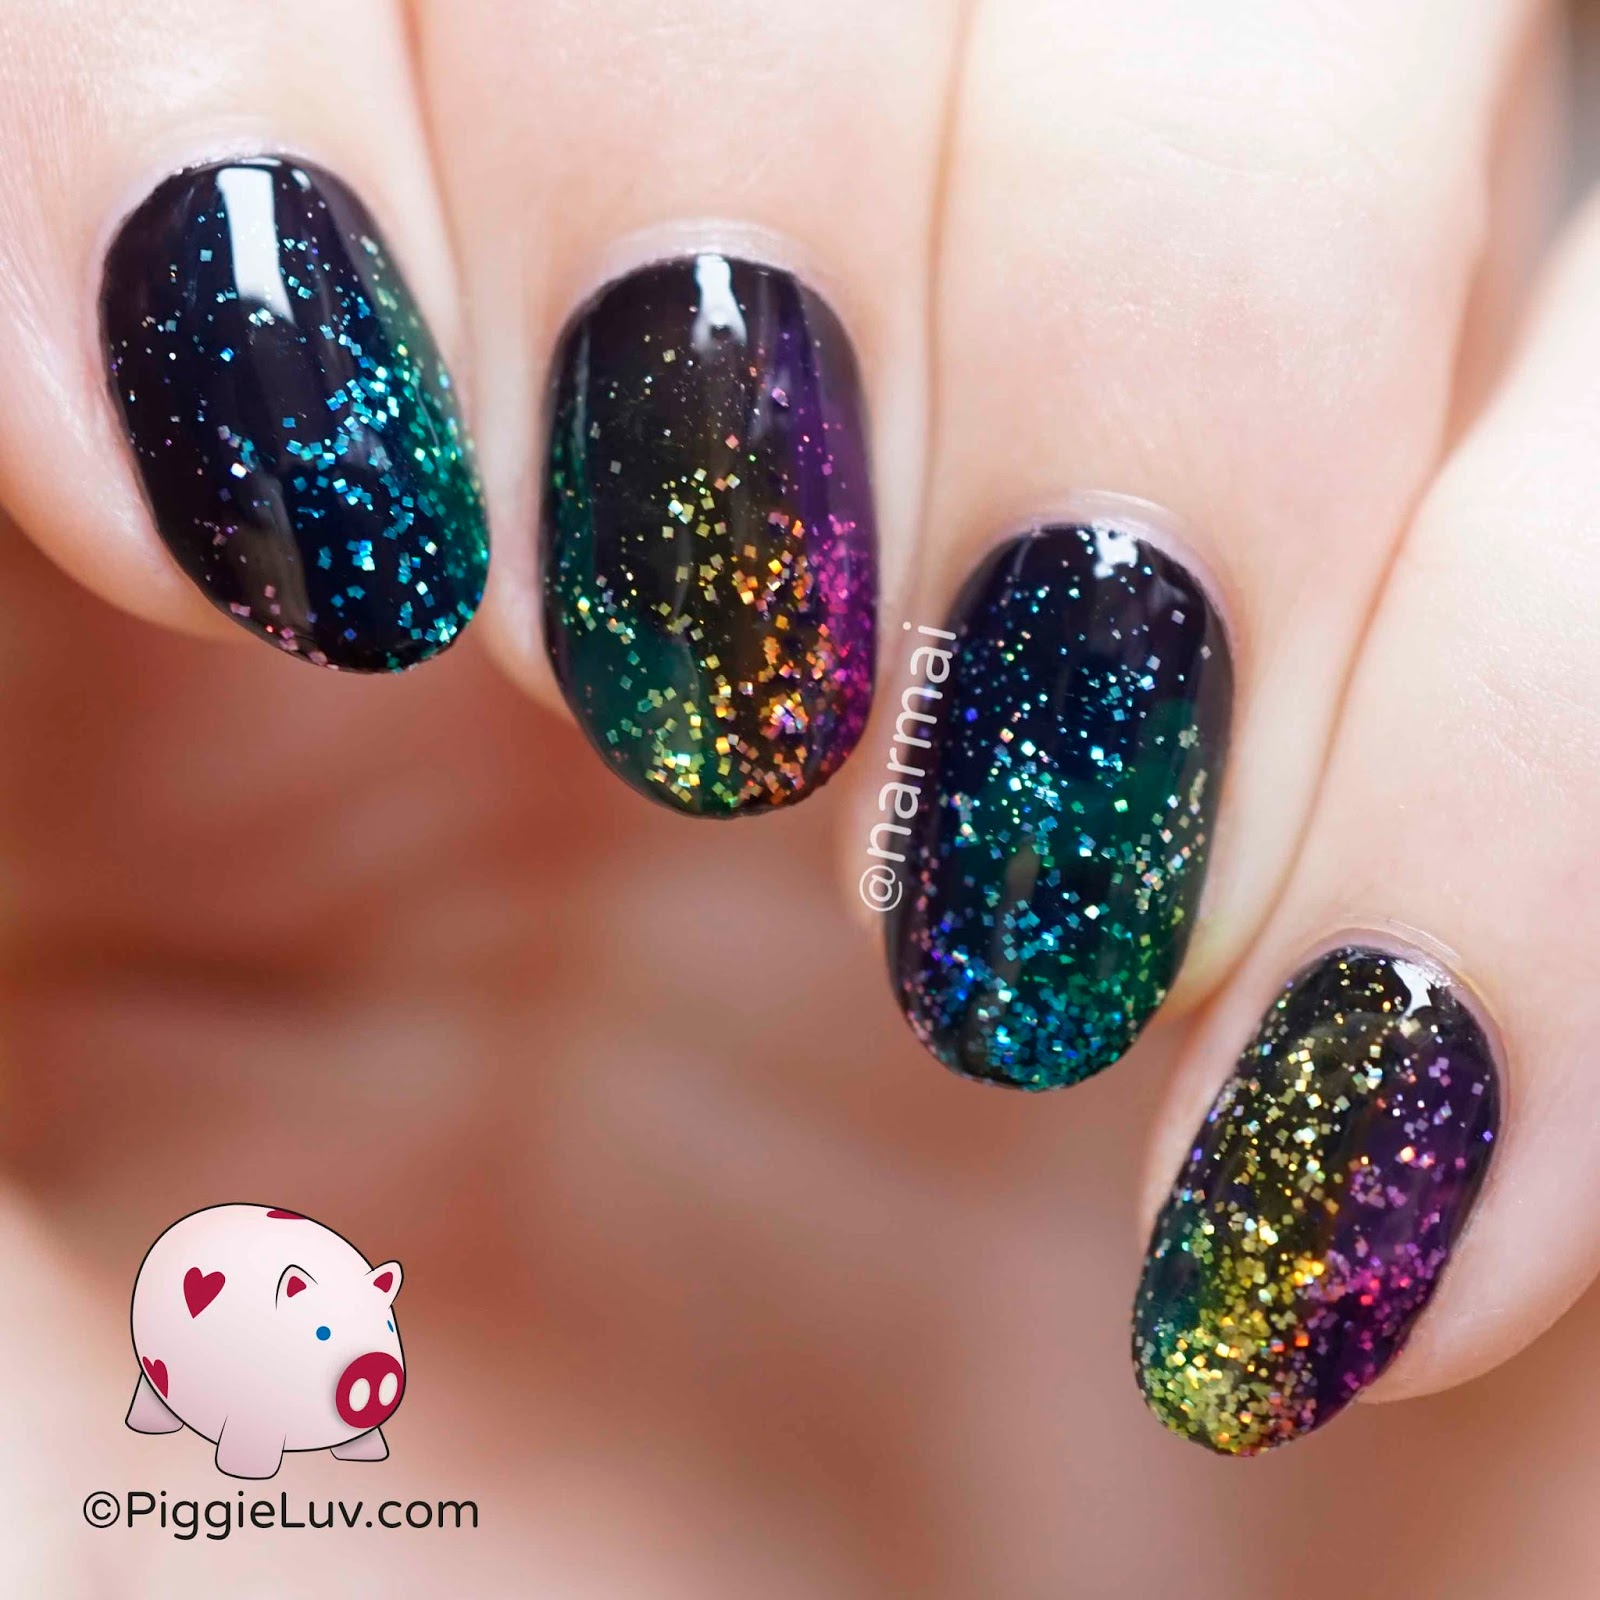 PiggieLuv: Scattered rainbow glitter nail art